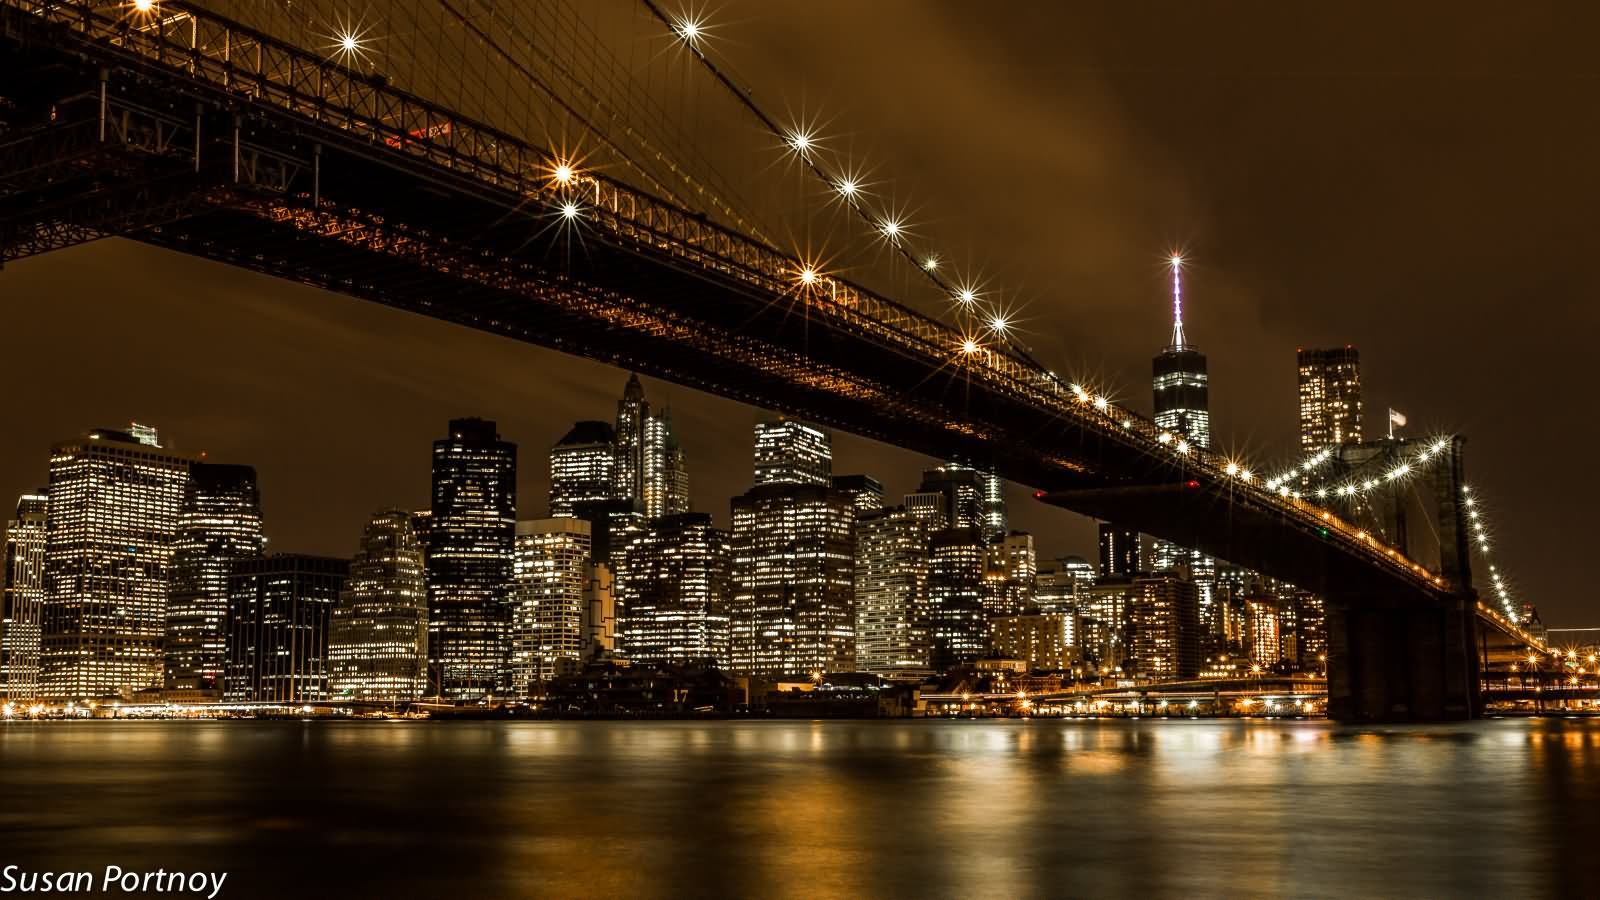 40 Very Beautiful Brooklyn Bridge Pictures And Photos